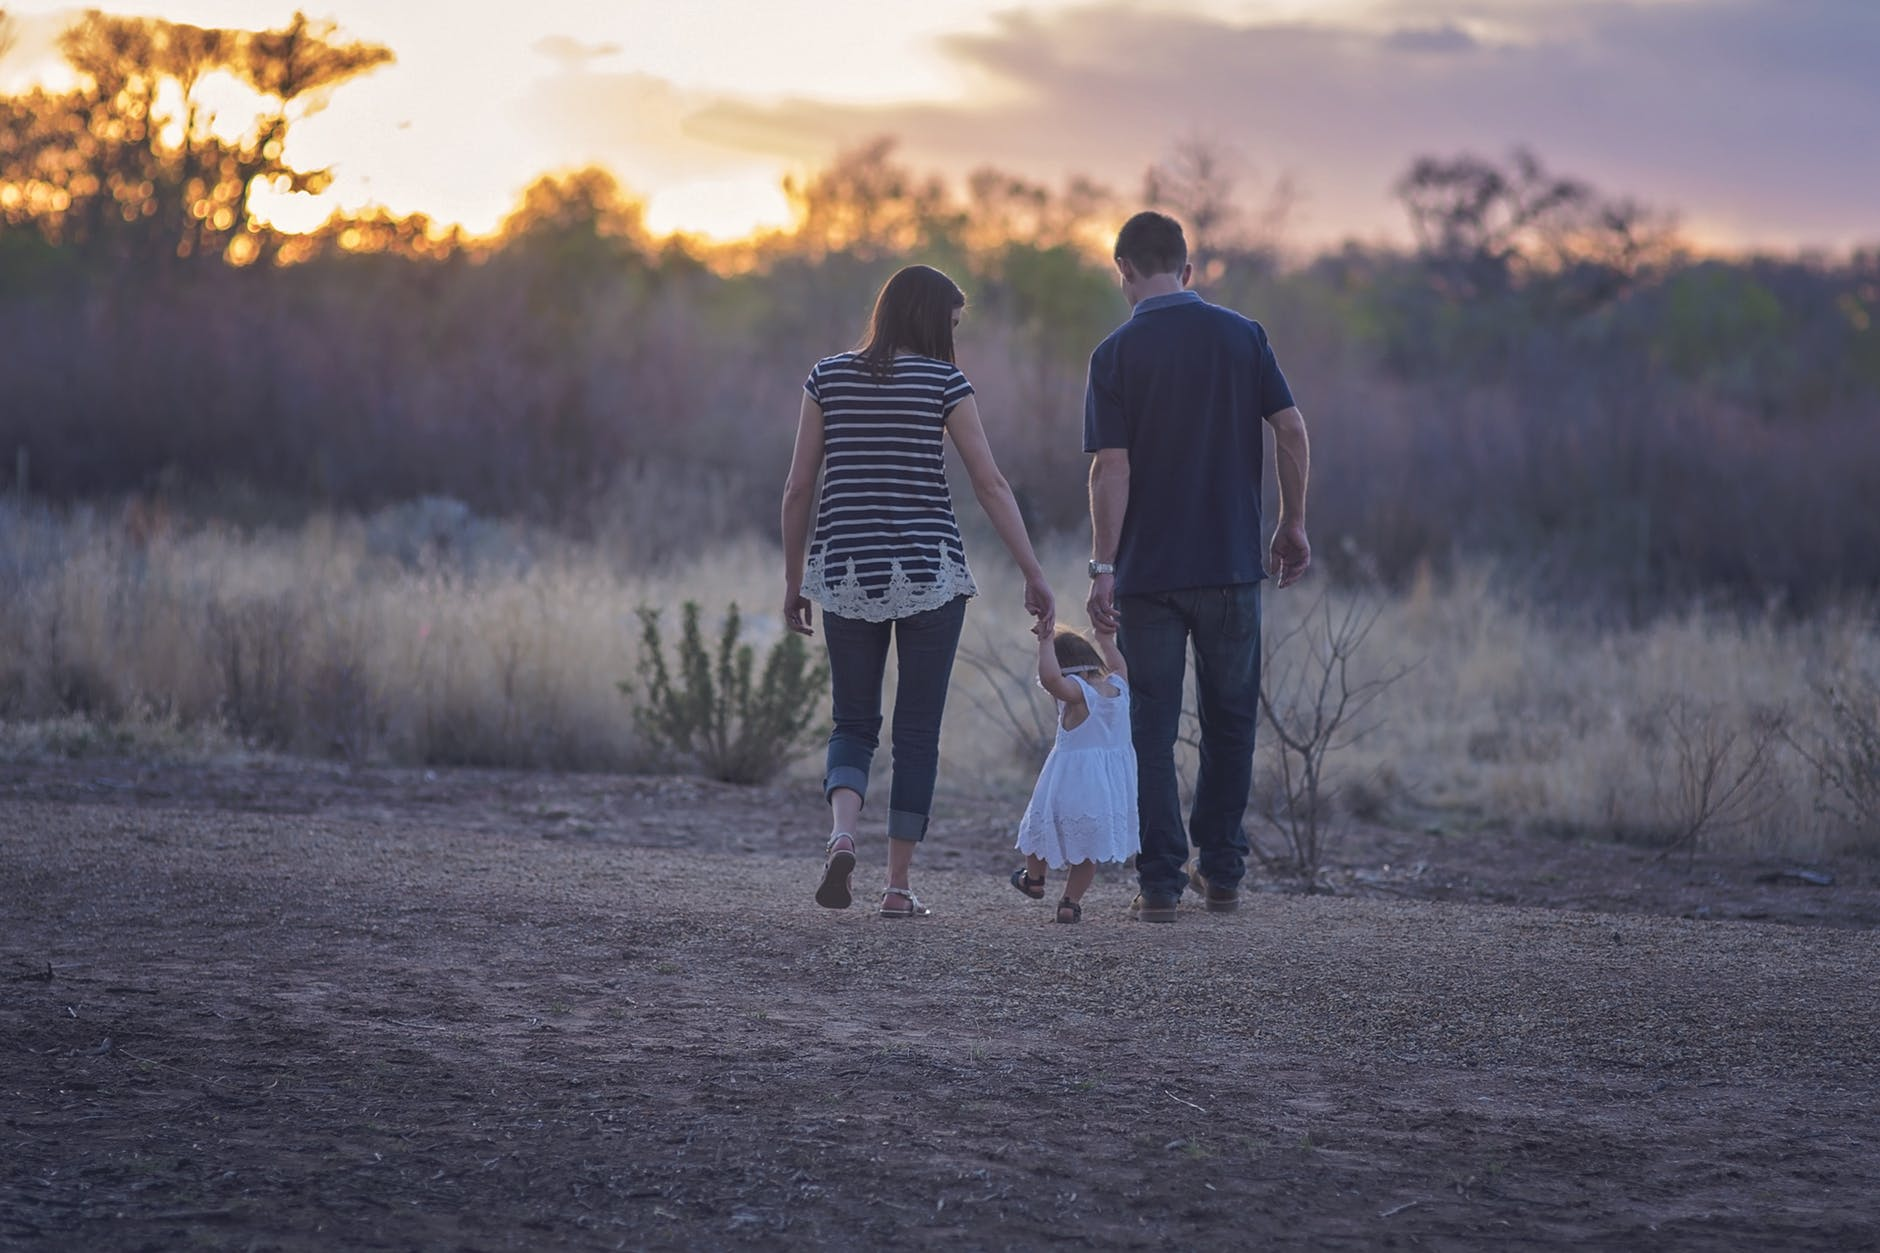 Family of three walking on grassy field